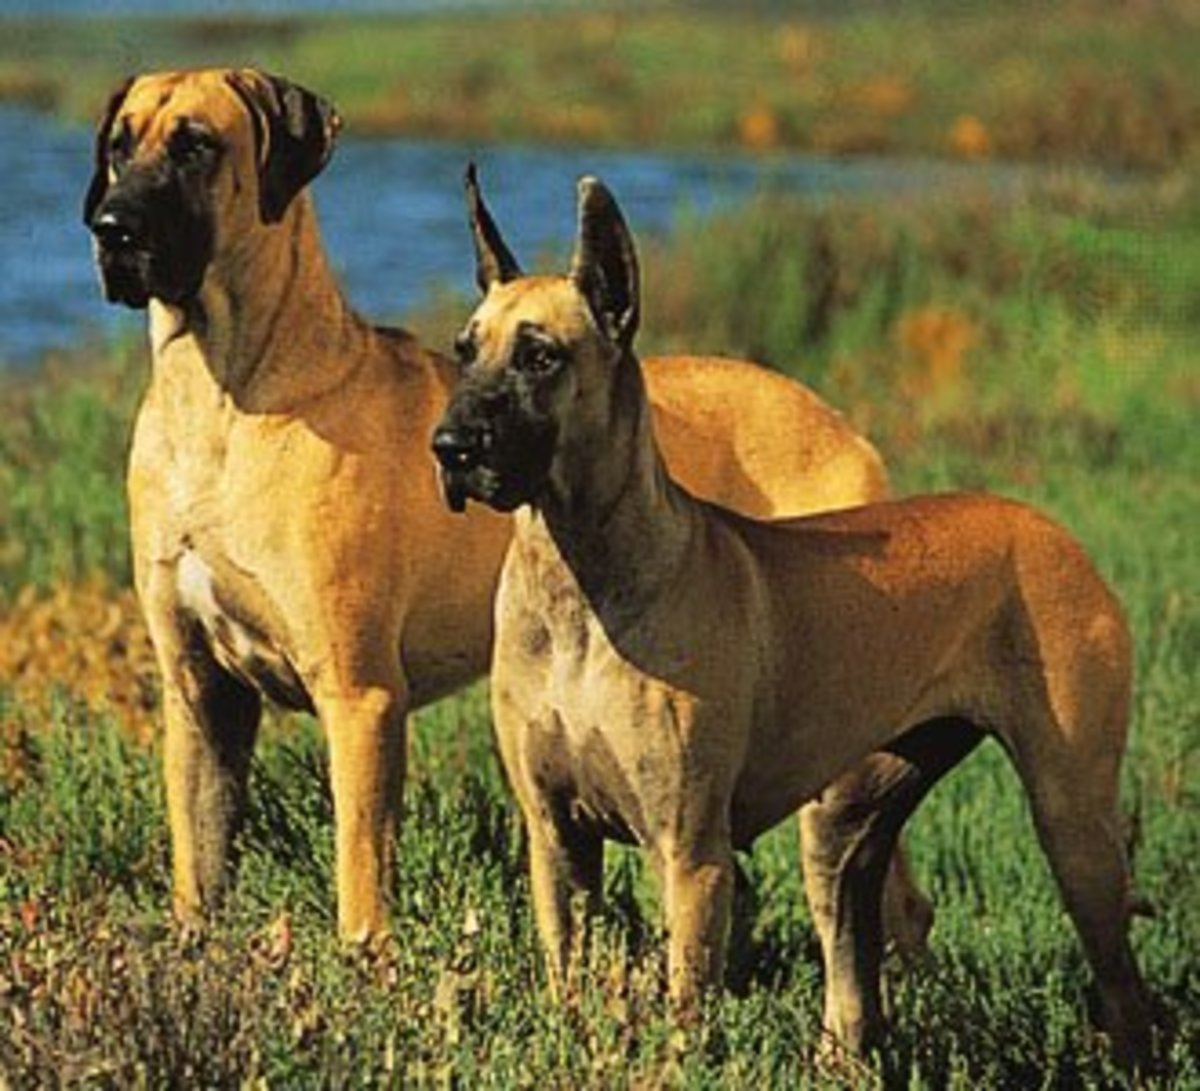 Great Danes.  The one on the left has natural ears, and the one on the right has cropped ears.  (Photo by Ron Kimball)